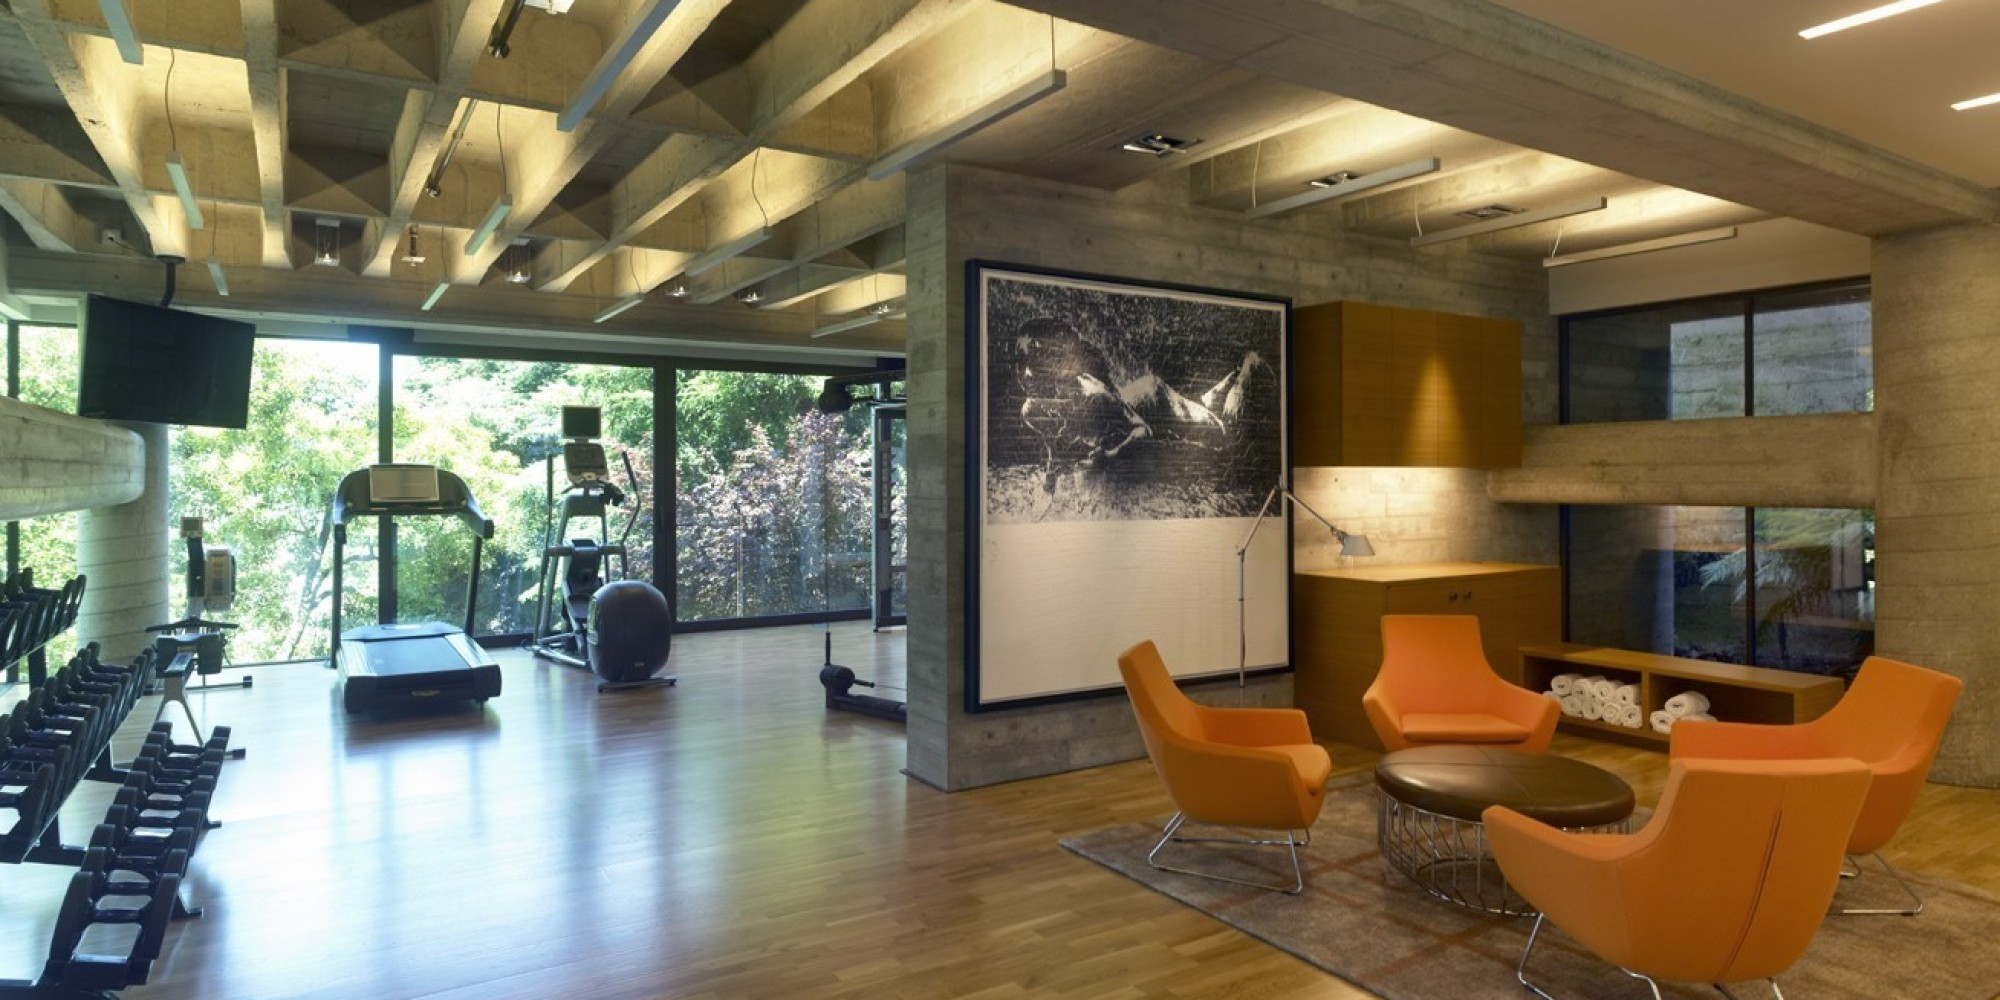 Merveilleux 6 Impressive Home Gyms That Offer The Ultimate Personal Fitness Oasis |  HuffPost